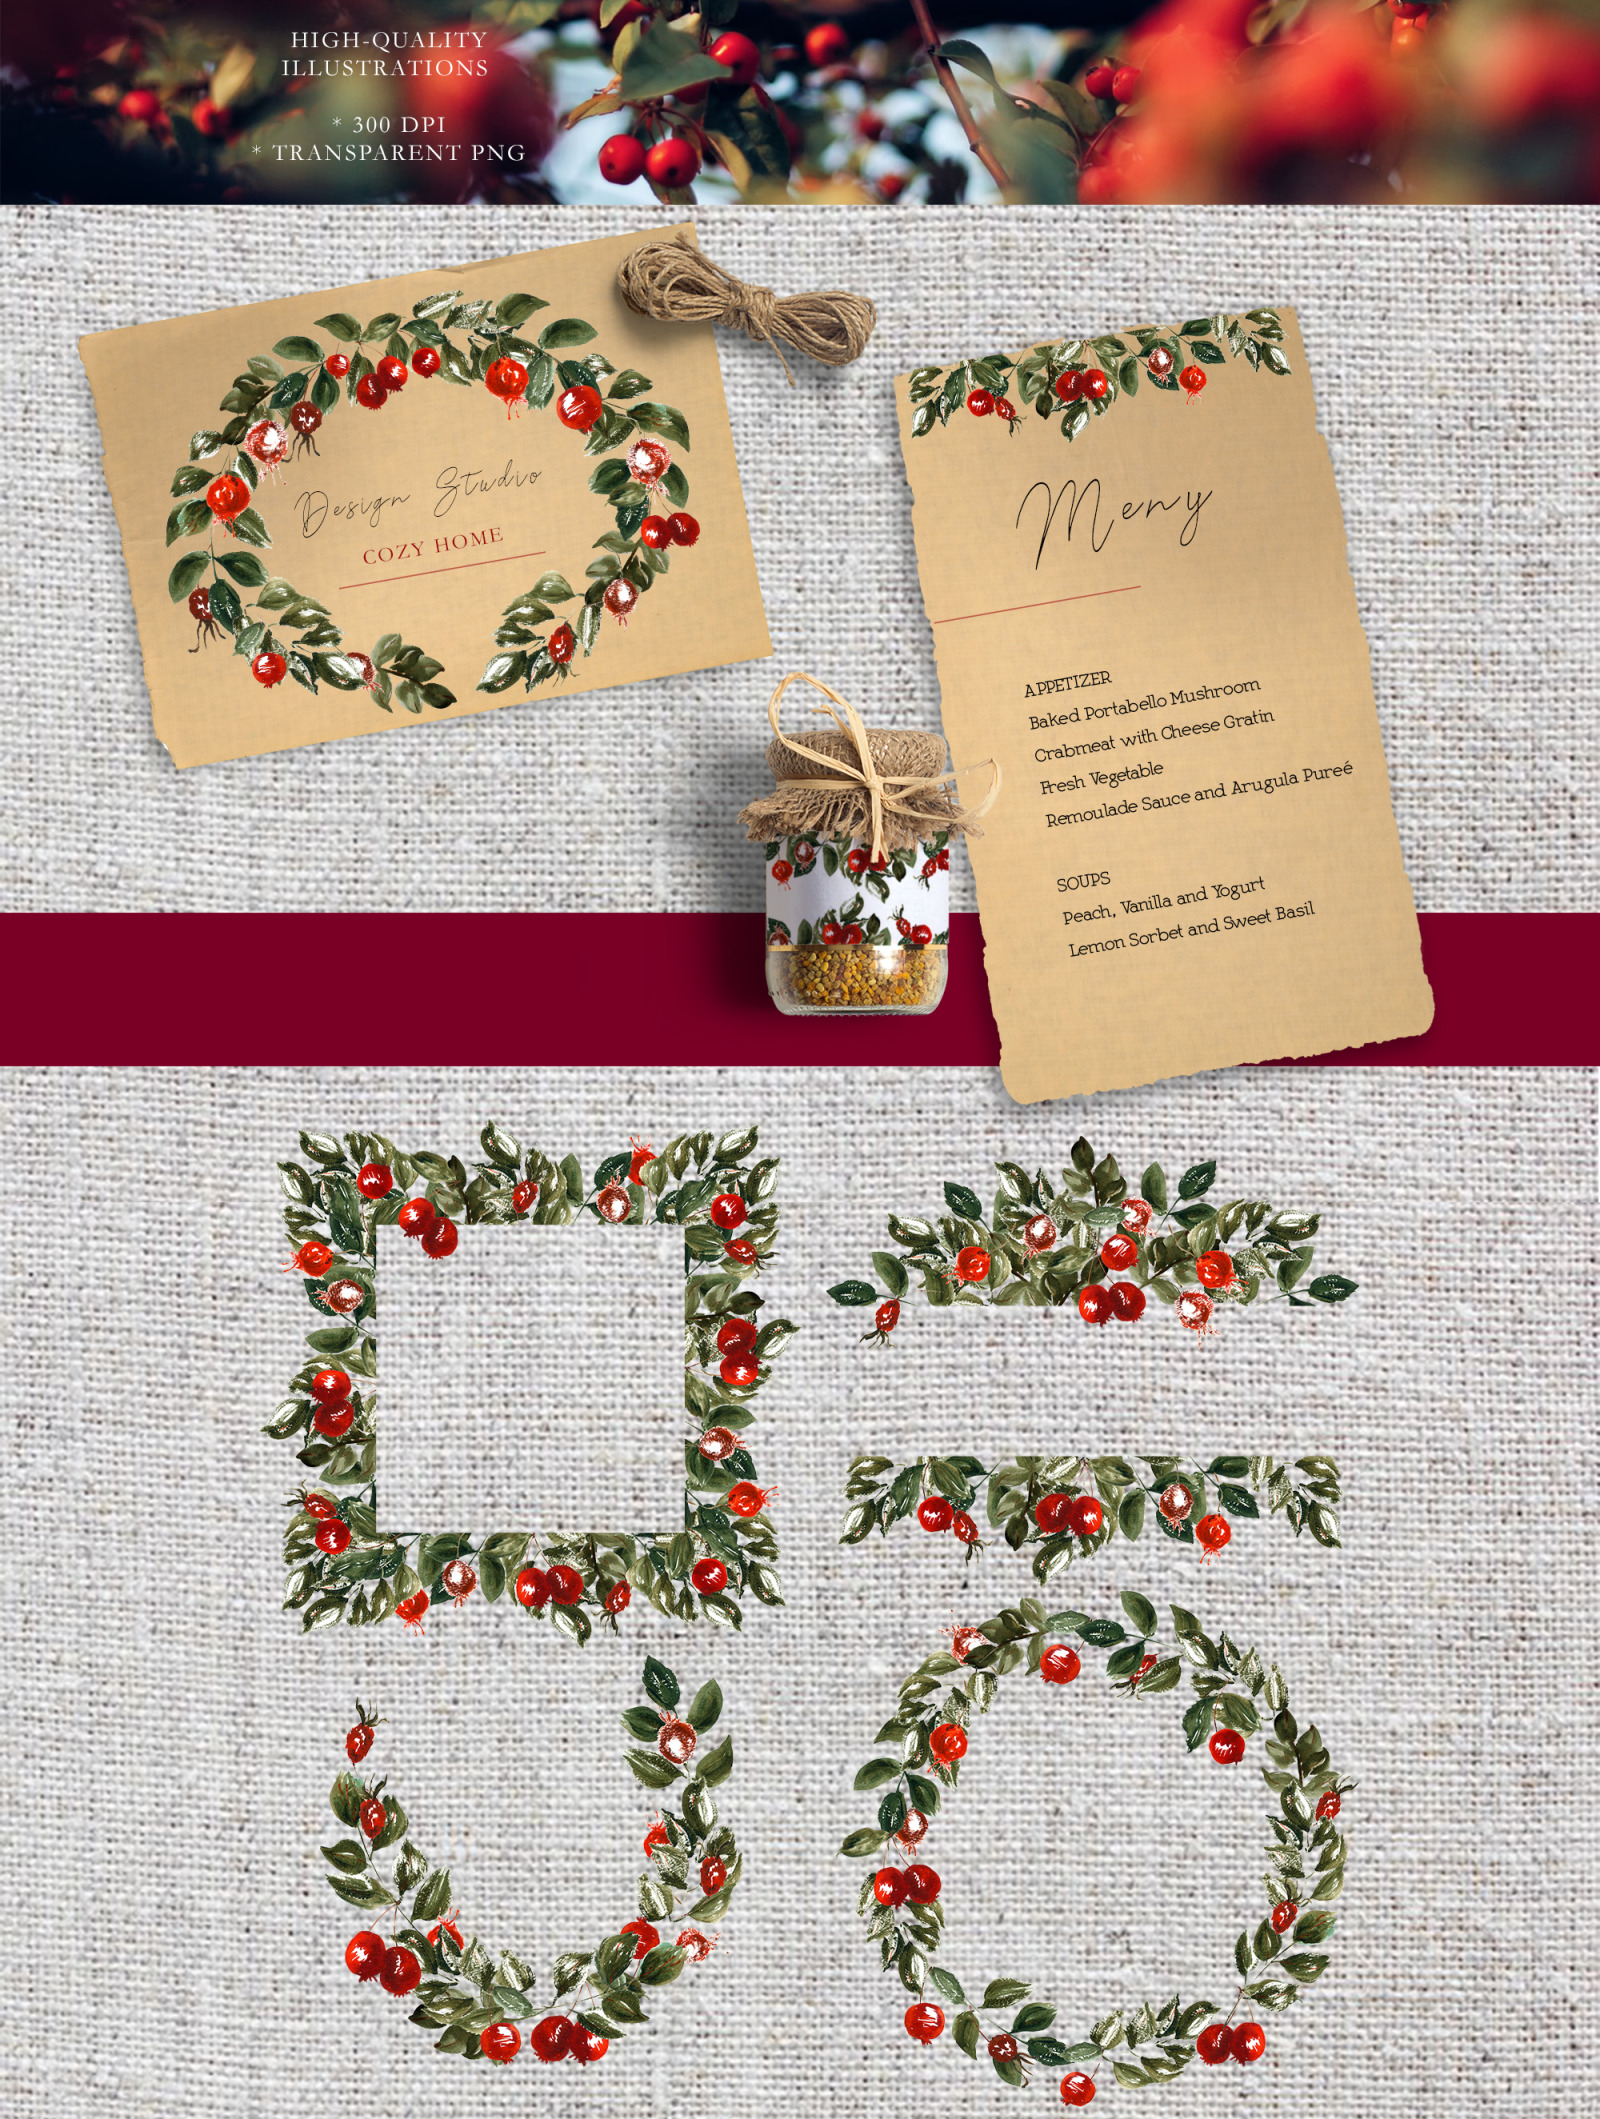 Watercolor autumn boho clipart Red berries and hand drawn floral elements. Floral frames png autumn